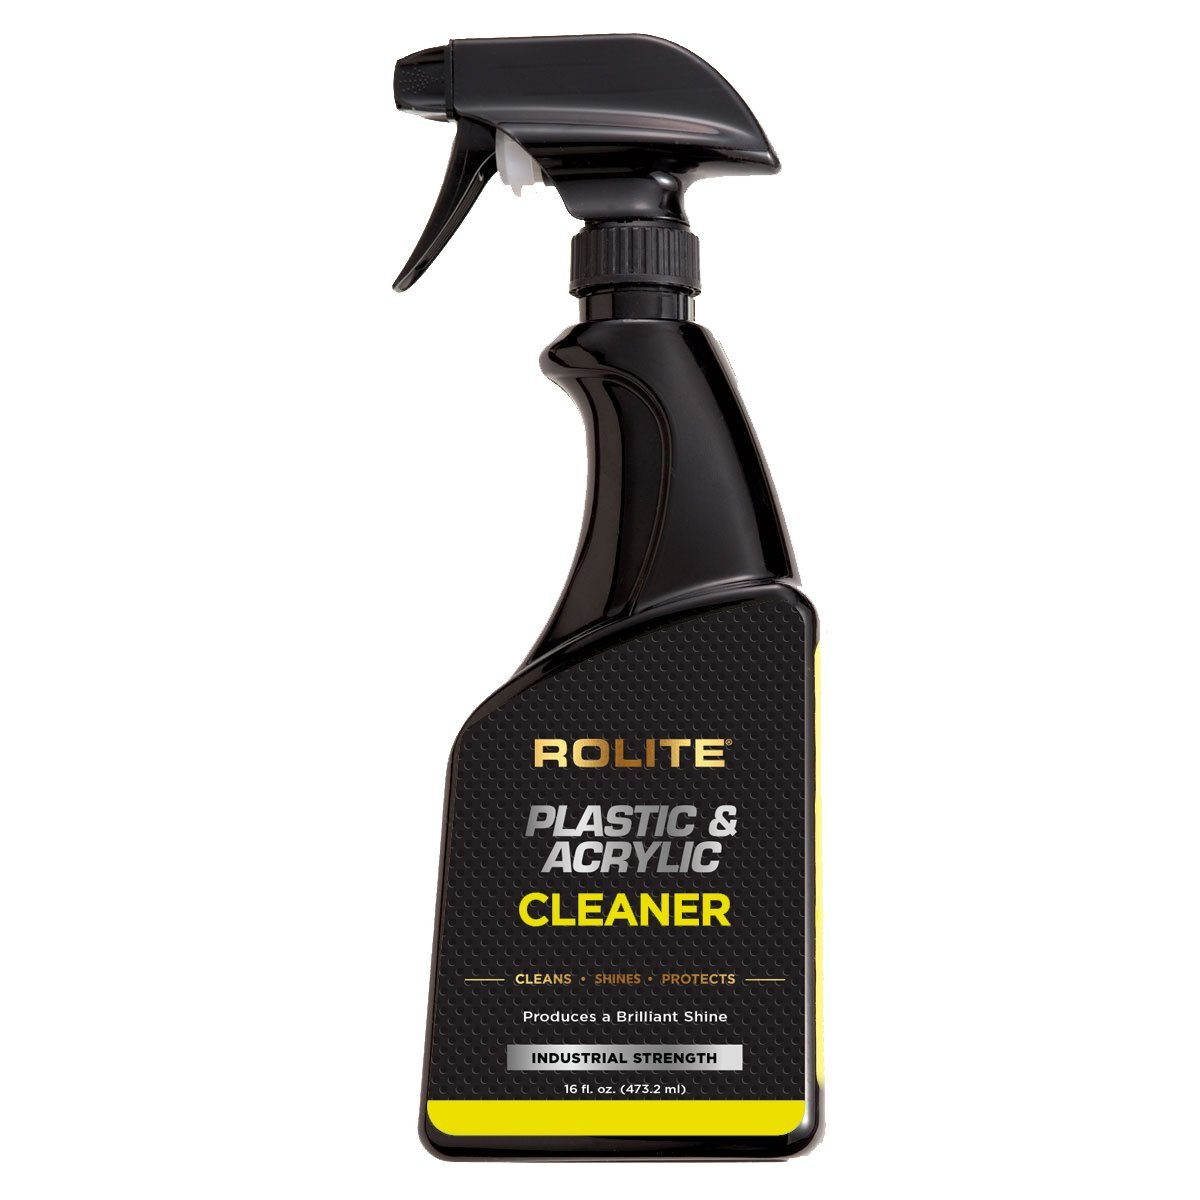 Rolite Plastic and Acrylic Cleaner}